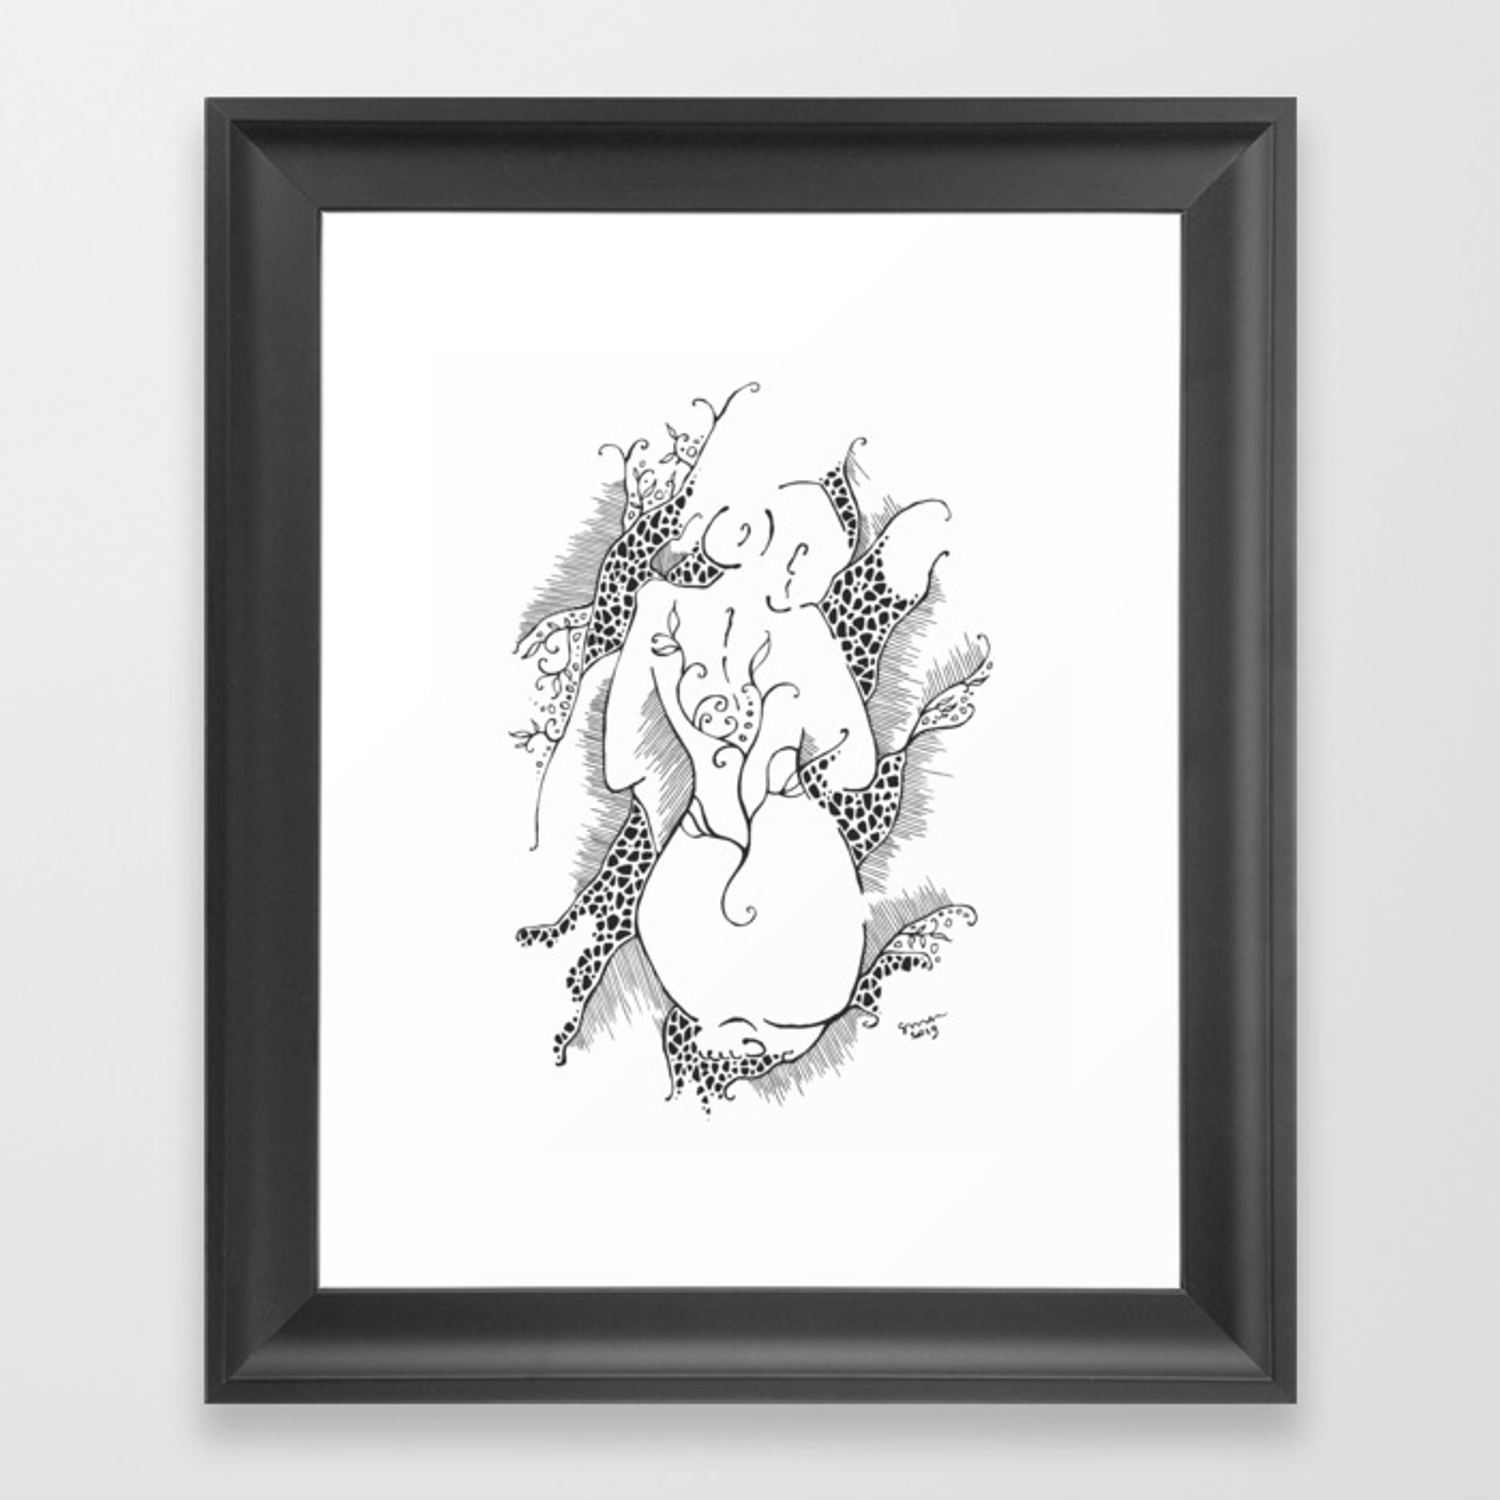 Female nude sketch woman from back black and white ink drawing framed art print